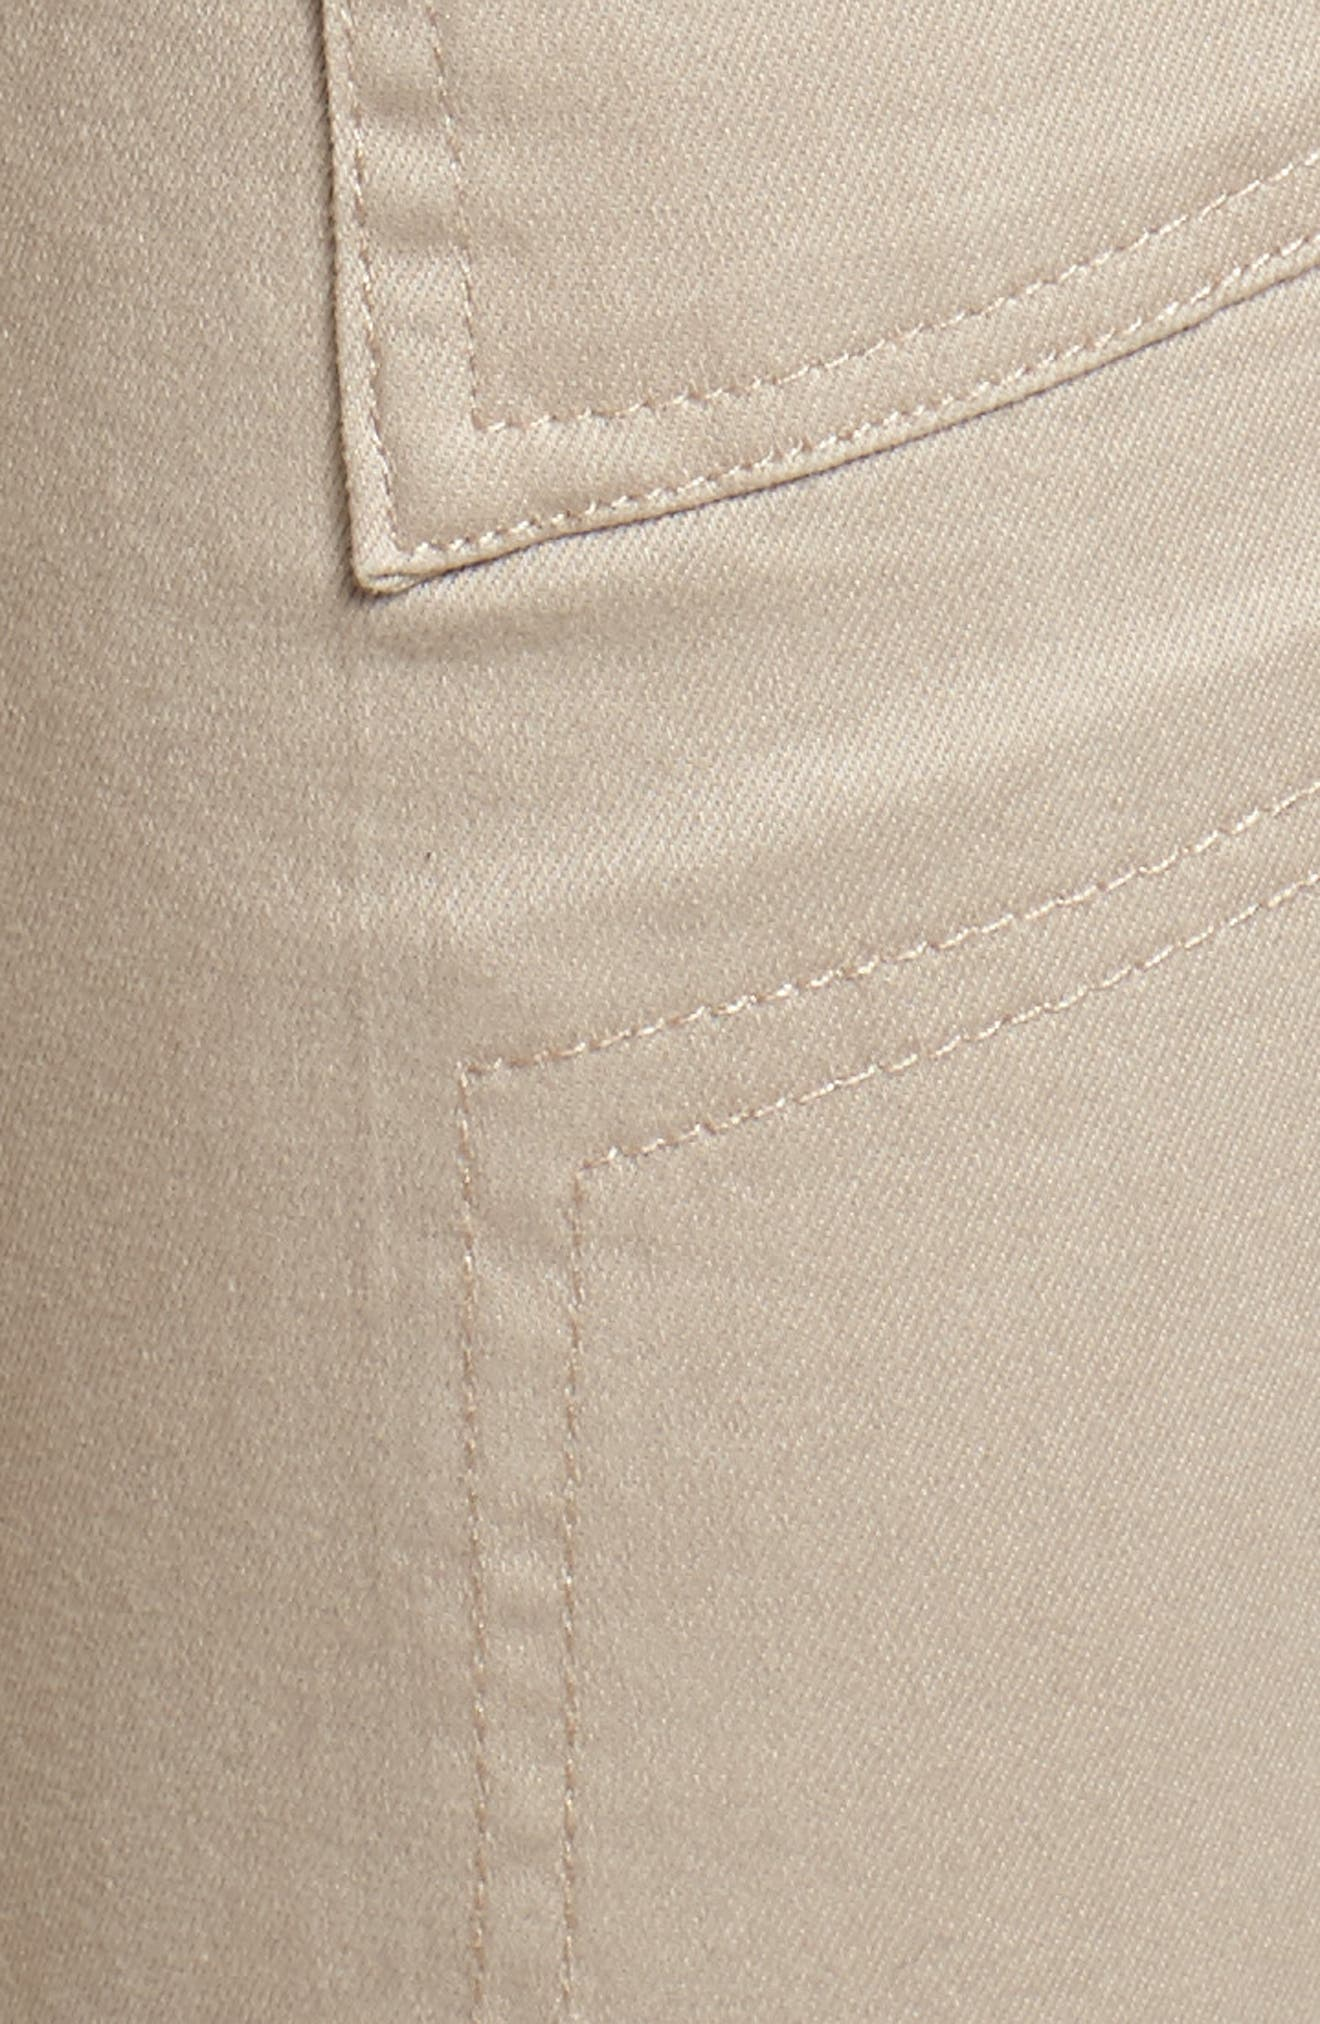 Twill Cargo Pants,                             Alternate thumbnail 6, color,                             Flax